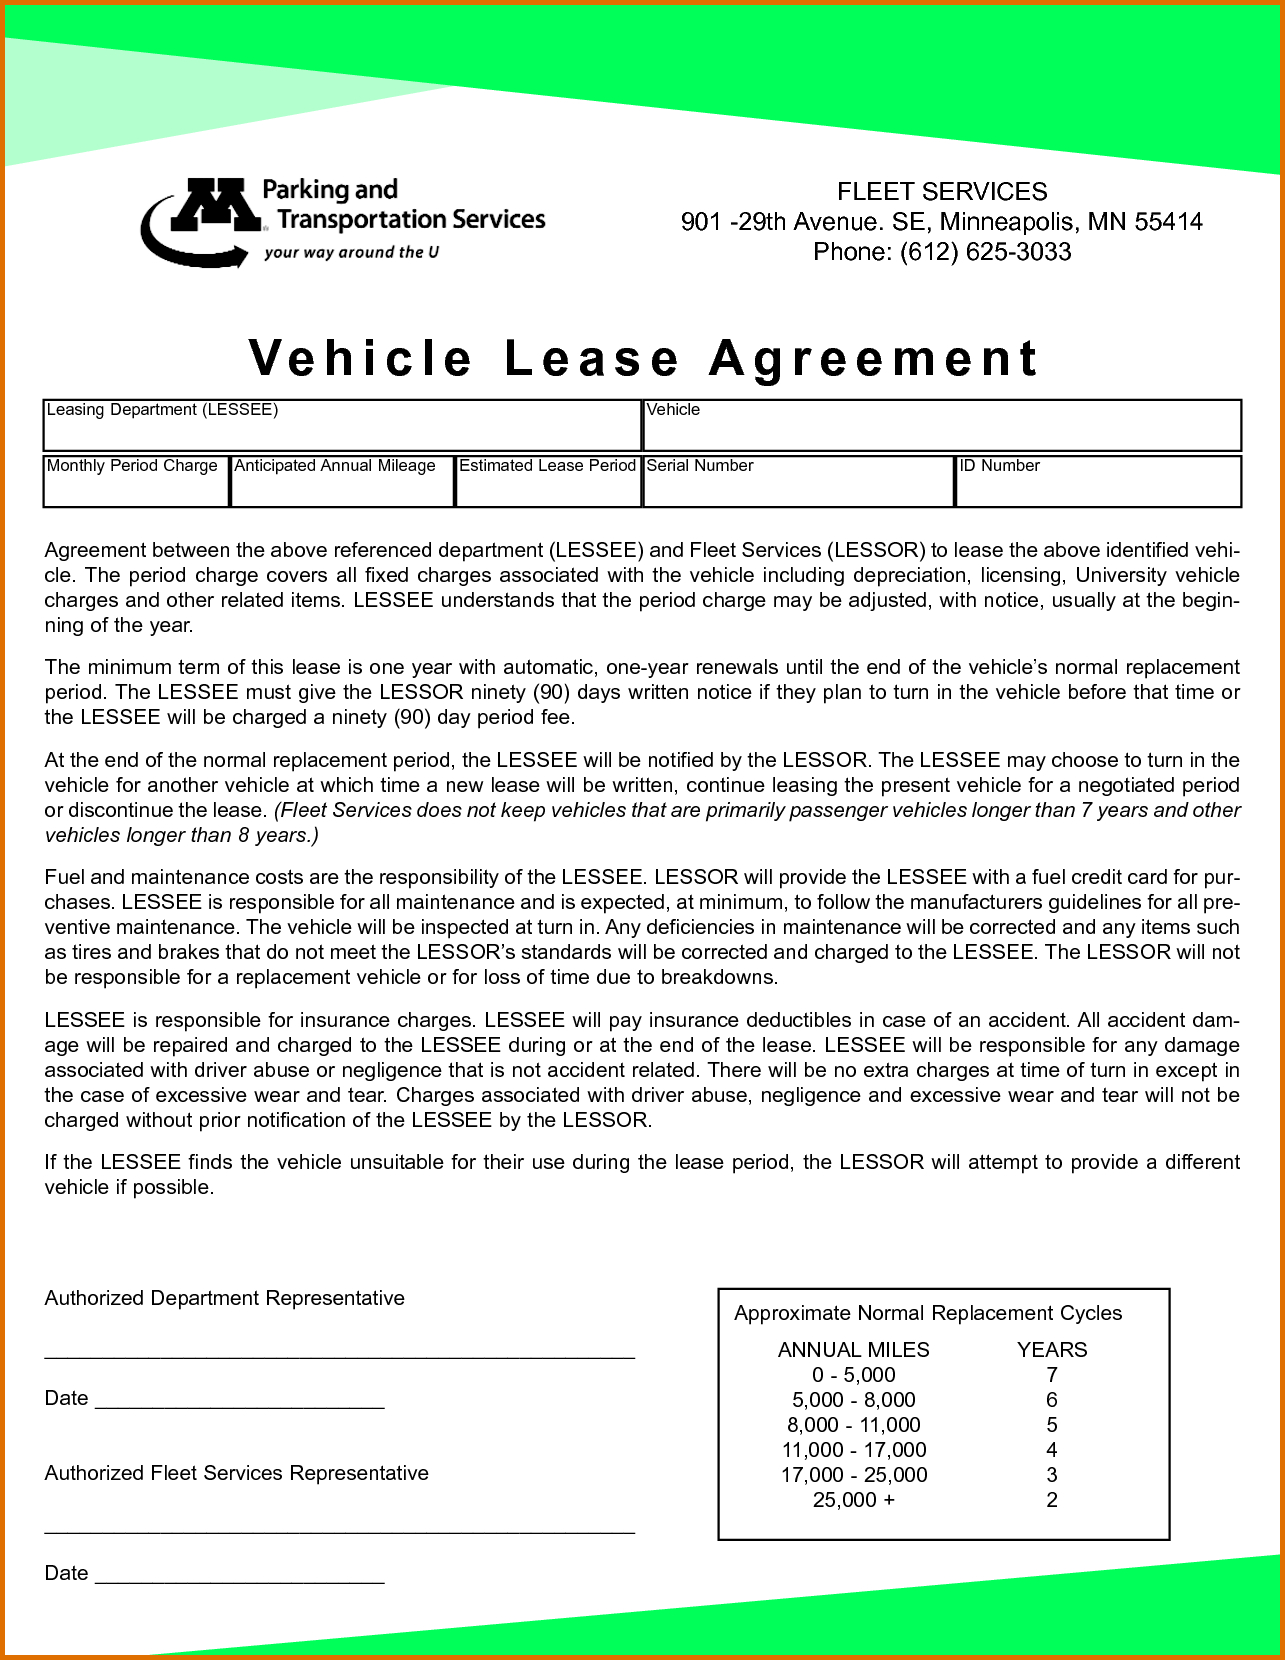 Agreement: Free Printable Vehicle Lease Agreement. Vehicle Lease - Free Printable Vehicle Lease Agreement